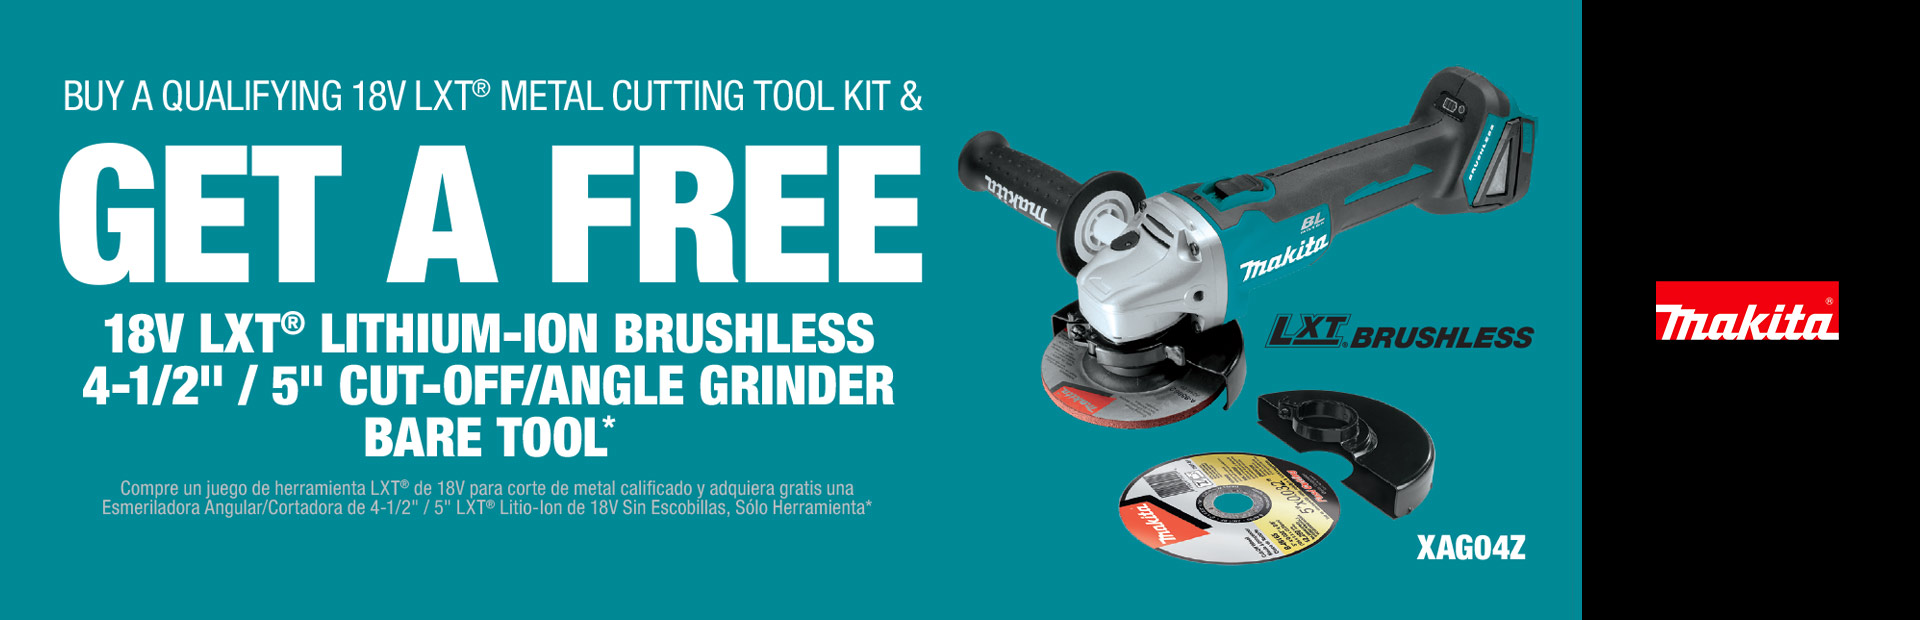 Makita: BUY A QUALIFYING 18V LXT® METAL CUTTING TOOL KIT